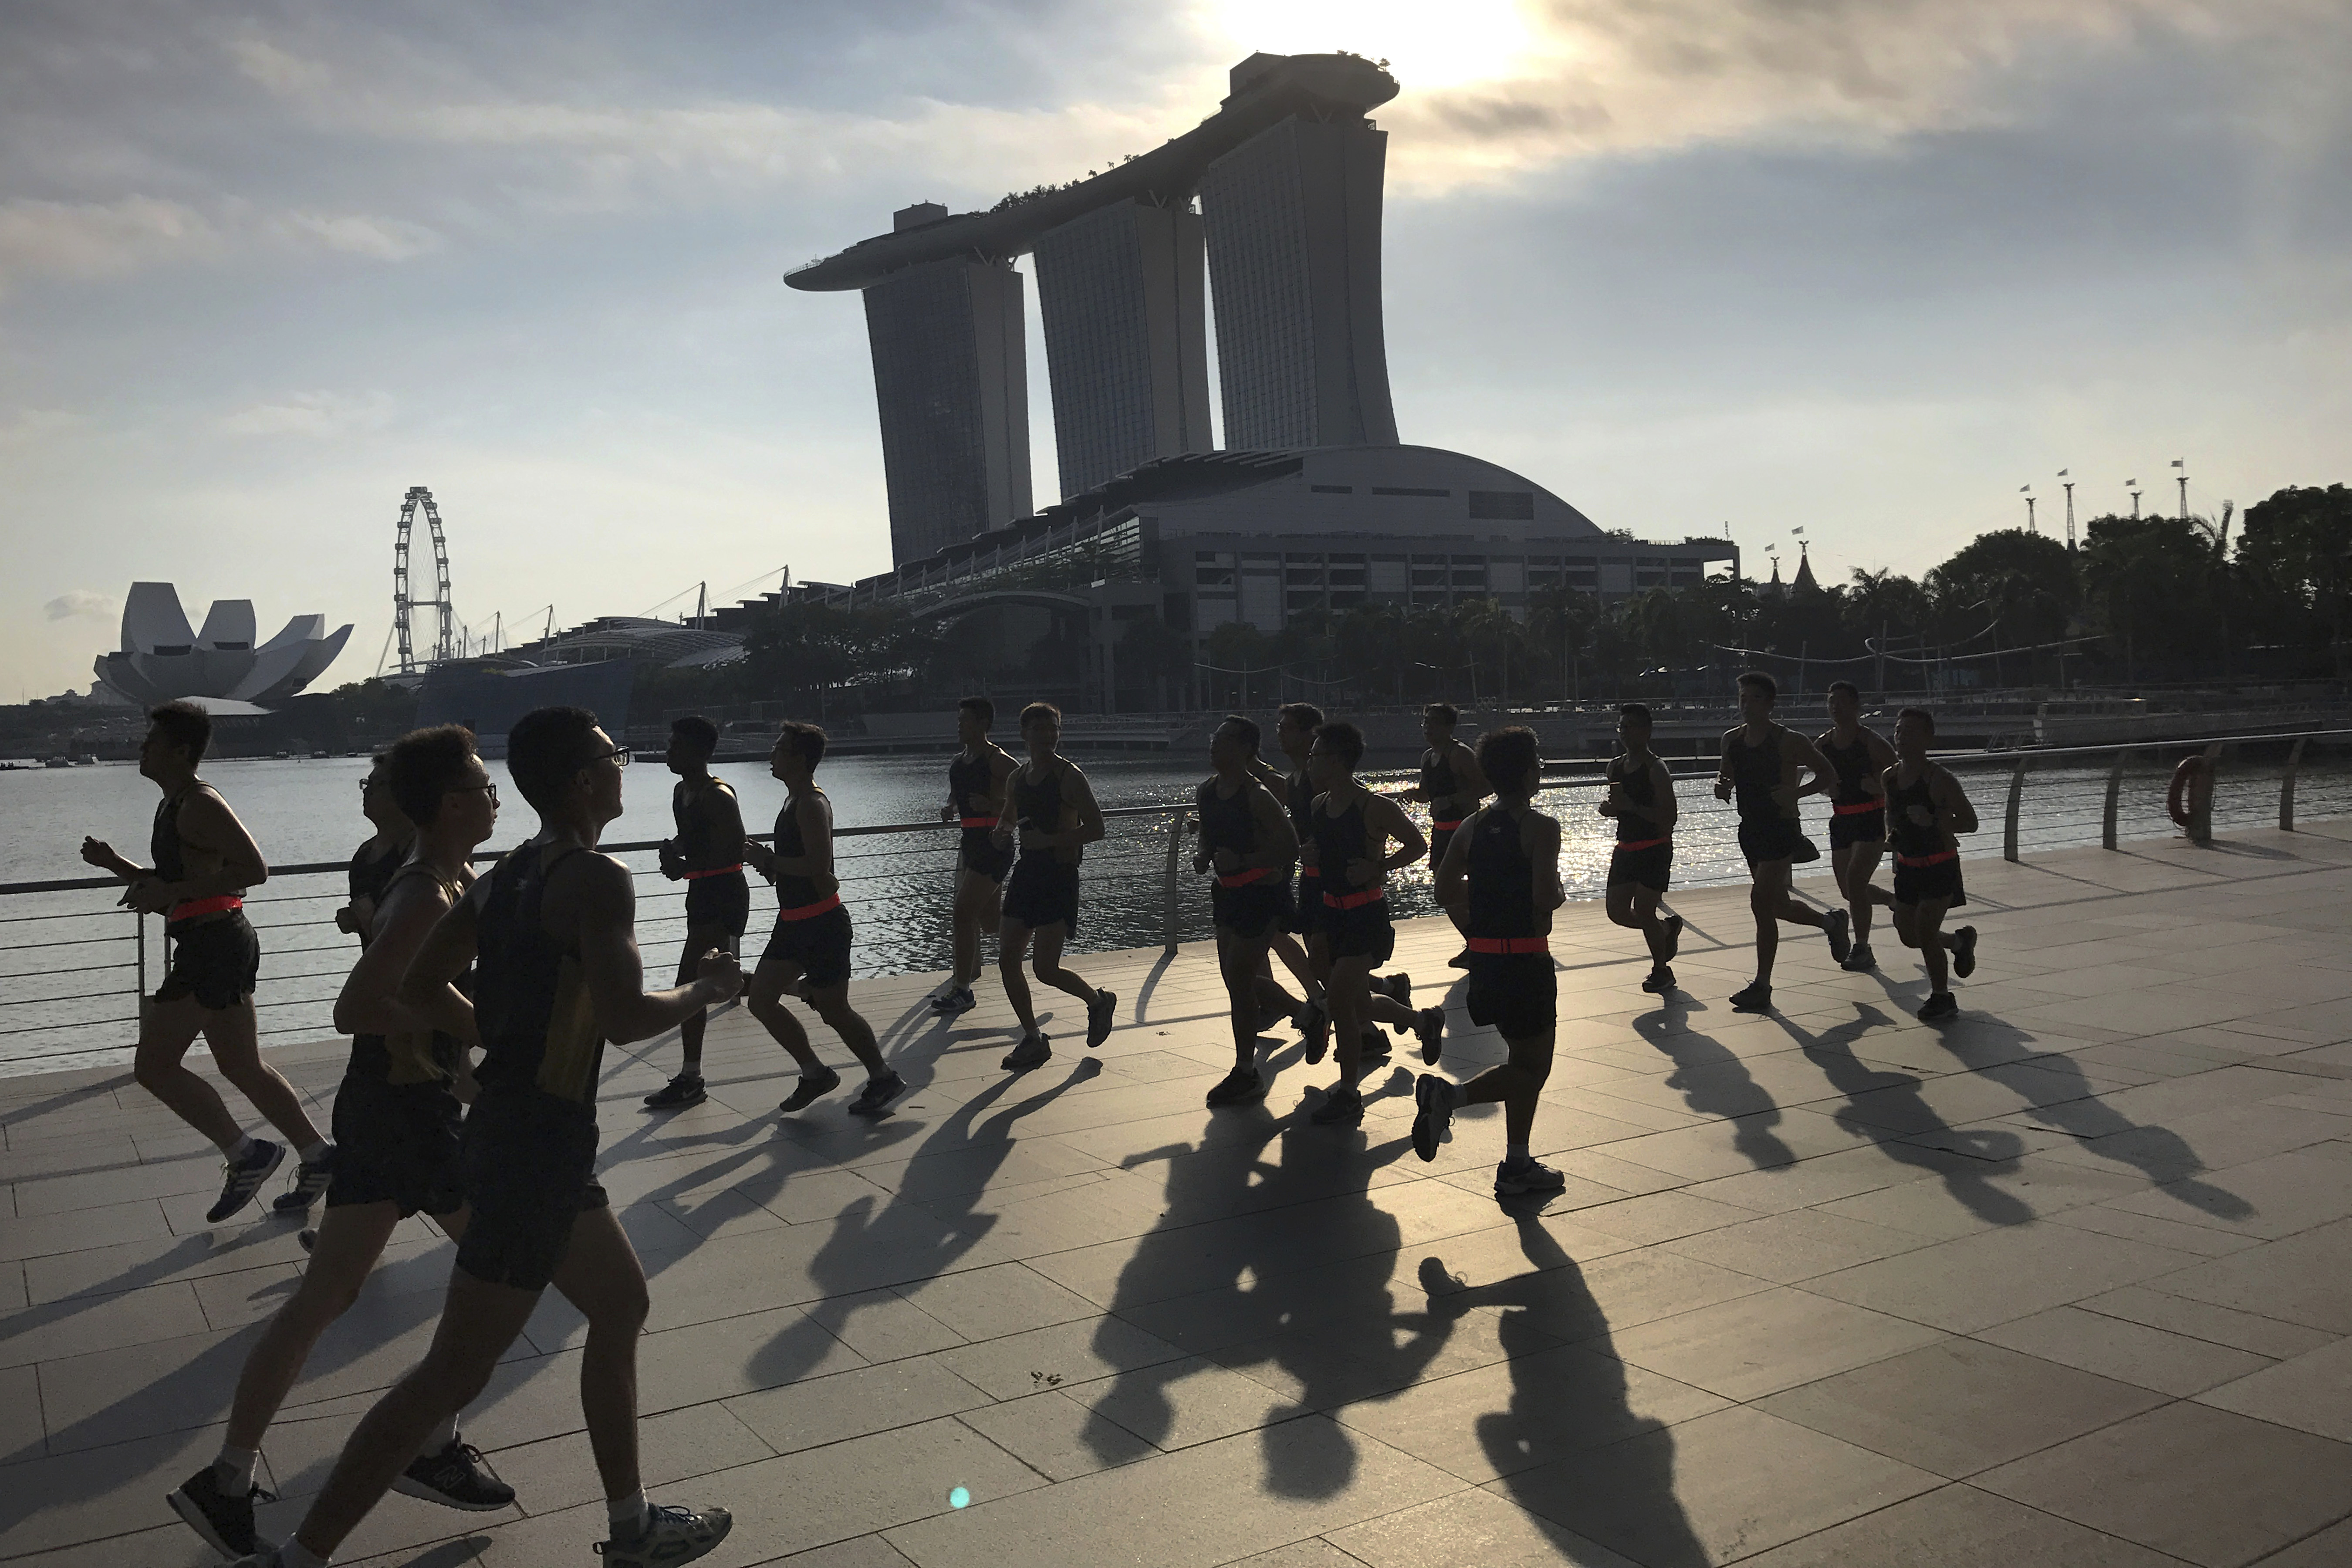 Runners are seen in silhouette and their shadows cast on the Marina Bay promenade as they jog at the start of a work day on Friday Aug. 4, 2017, in Singapore. The Marina Bay Sands hotel towers, right, ArtScience Museum, left, and Singapore Flyer, second left, are seen in the background.